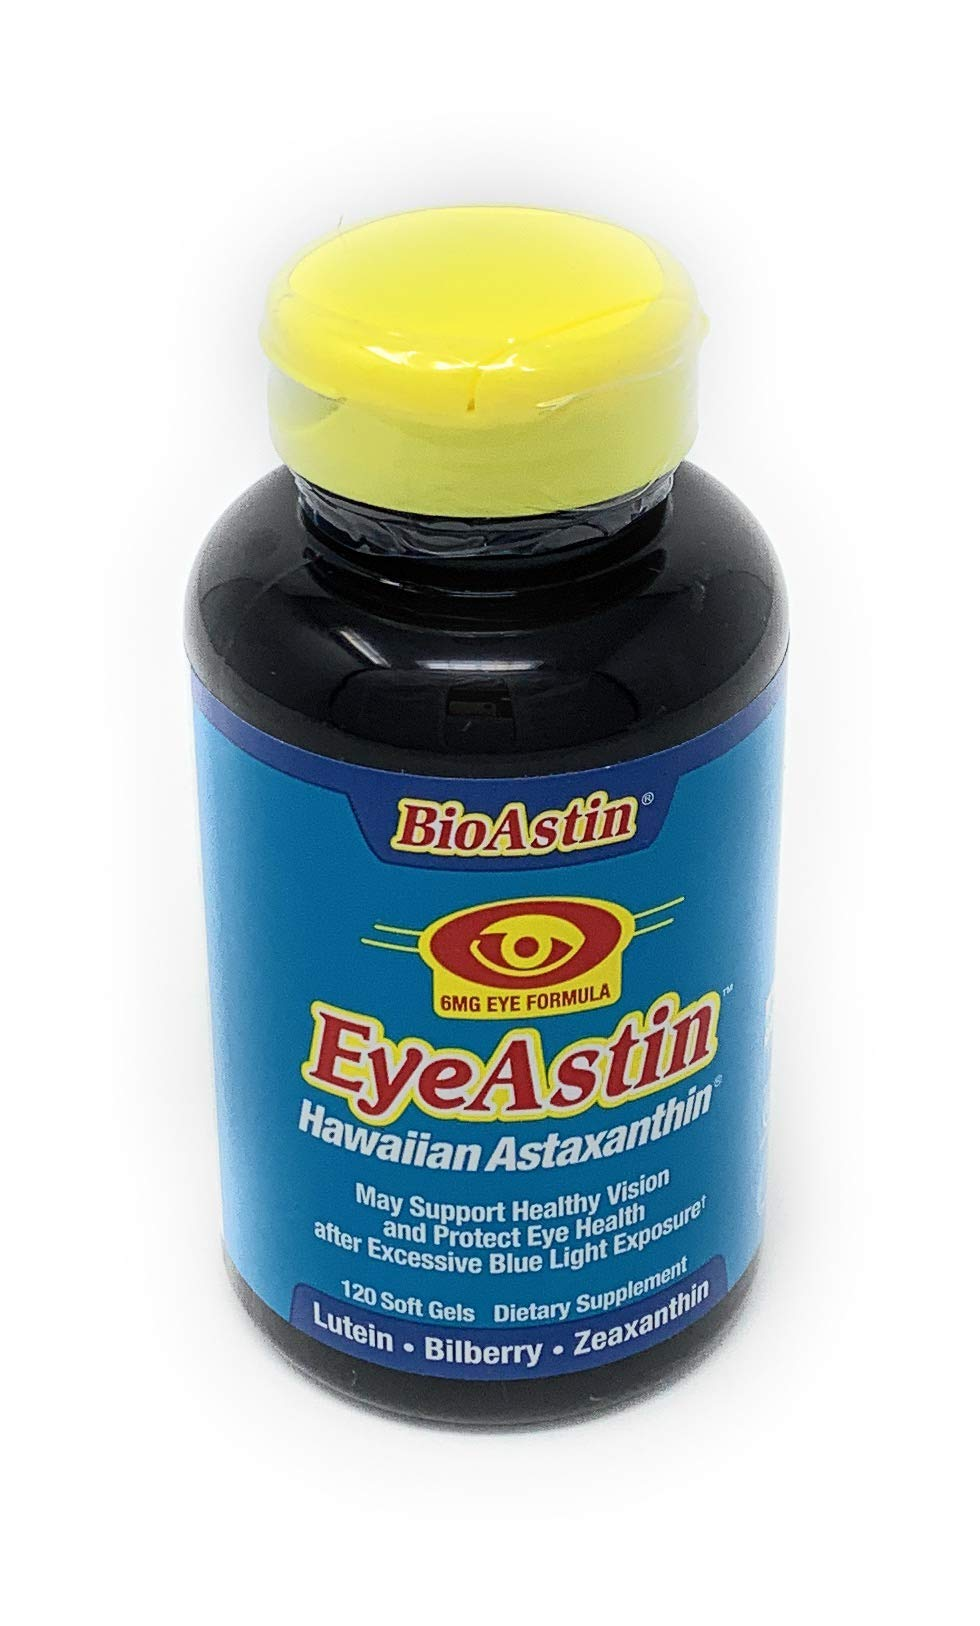 EyeAstin BioAstin Hawaiian Astaxanthin - 120 Soft Gels - Supports Eye Health Naturally - A Super-Antioxidant Grown in Hawaii by NUTREX HAWAII